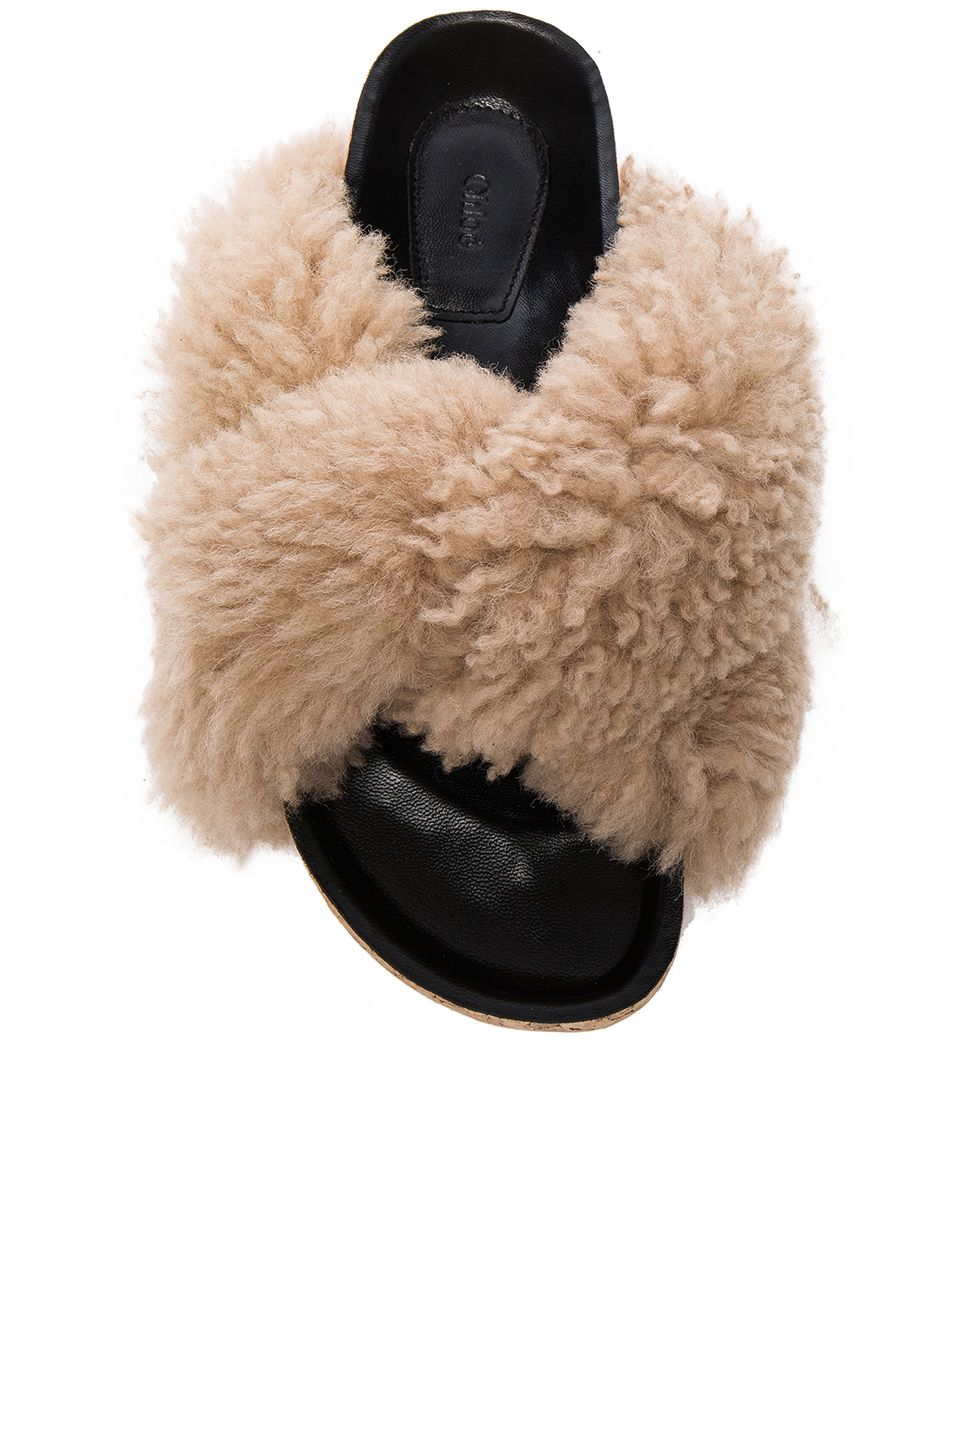 c77ca8020 Image 4 of Chloe Kerenn Shearling Fur Sandals in Fawn | dress it up ...